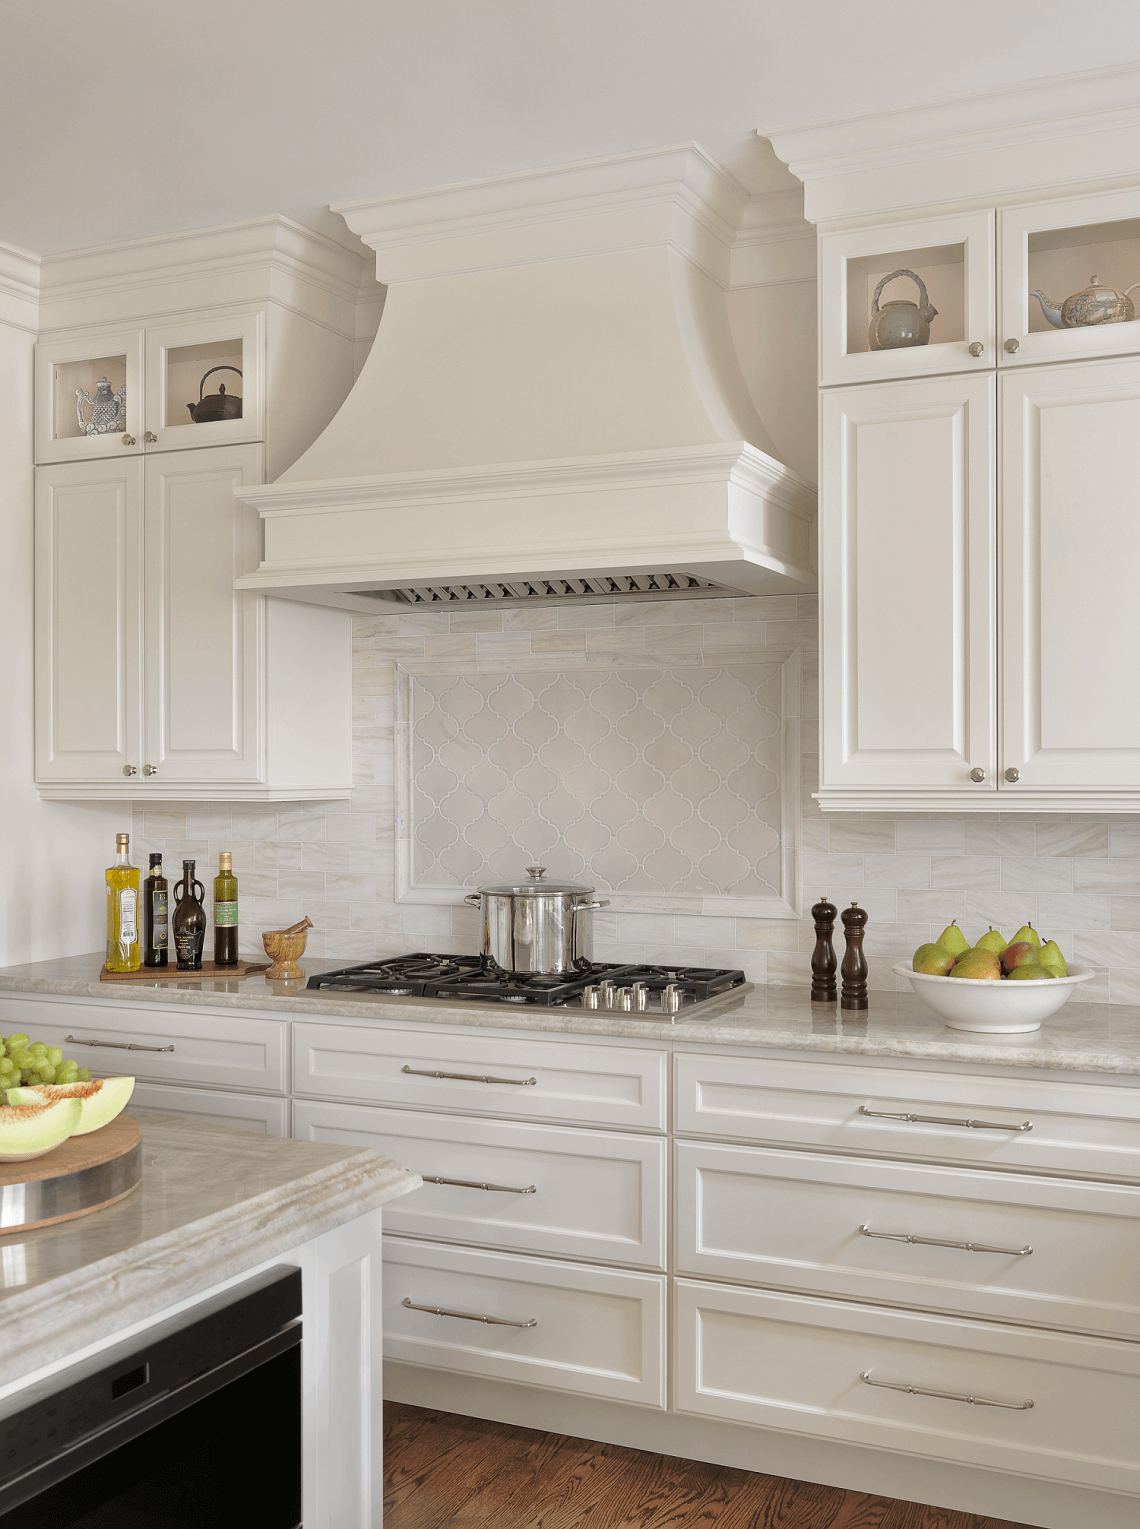 Beau Custom Cabinetry And Range Hood